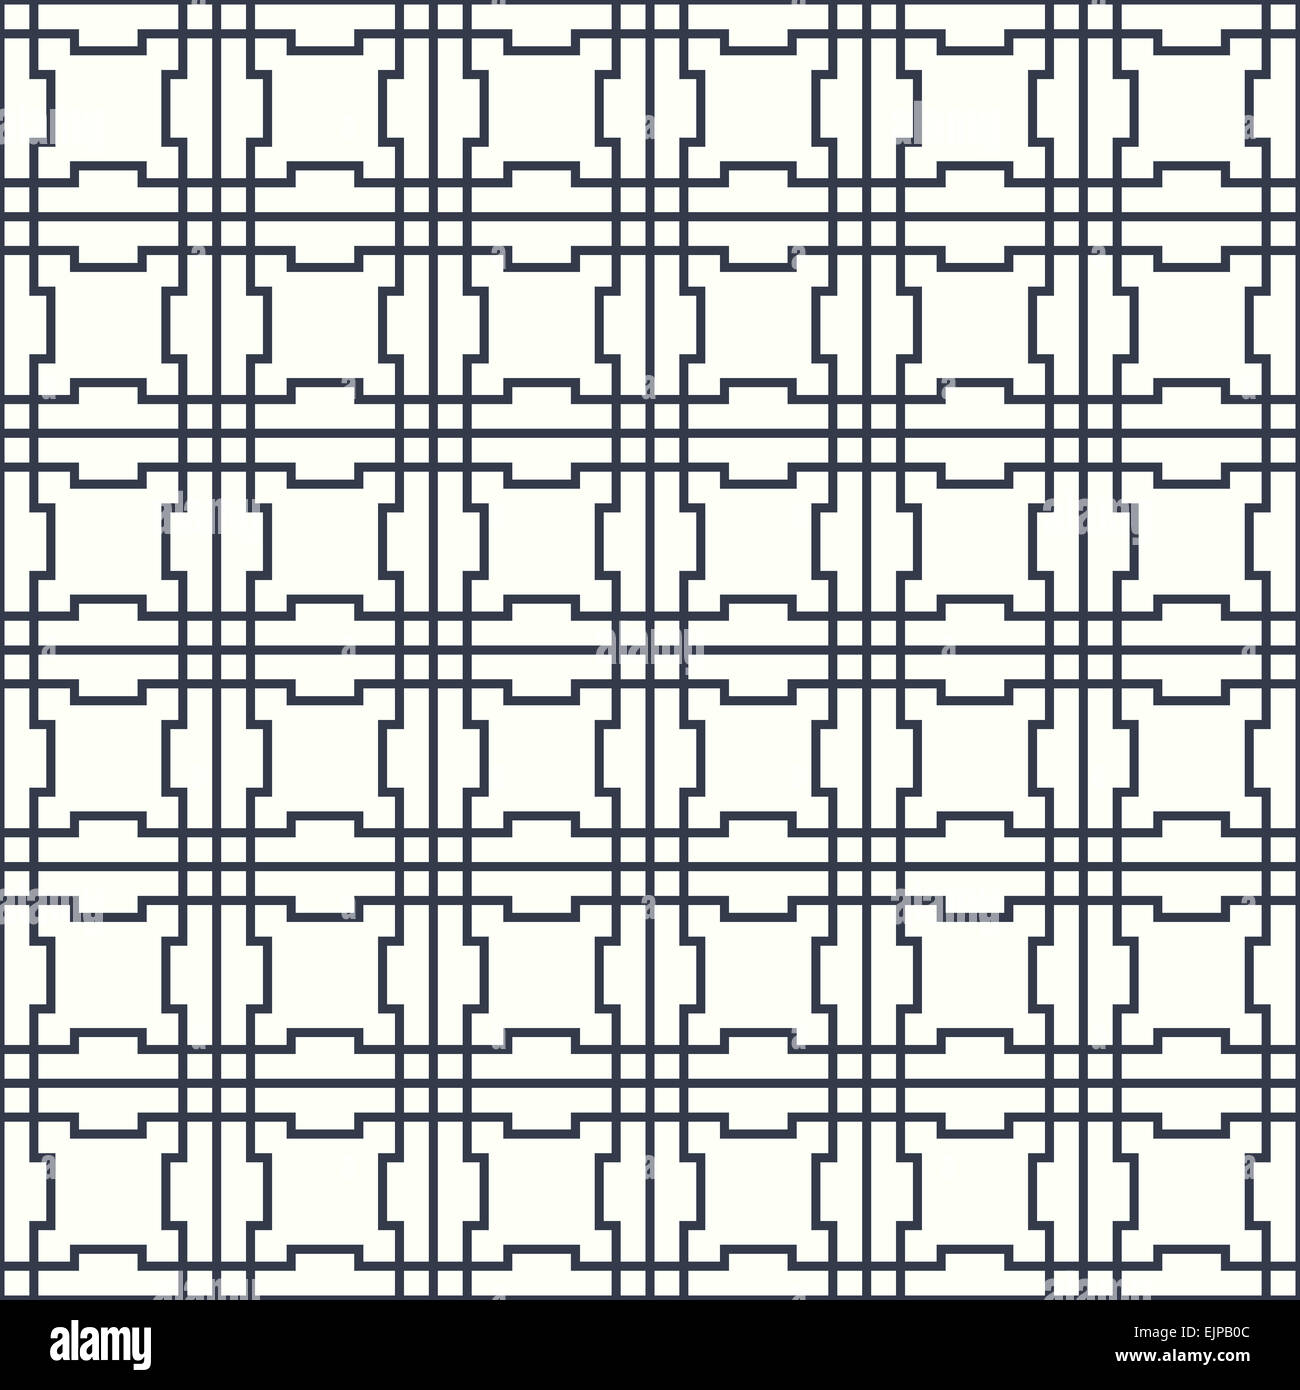 Charmant Symmetrical Geometric Shapes Black And White Vector Textile Backdrop. Can  Be Used As Fabric, Tablecloth Pattern.